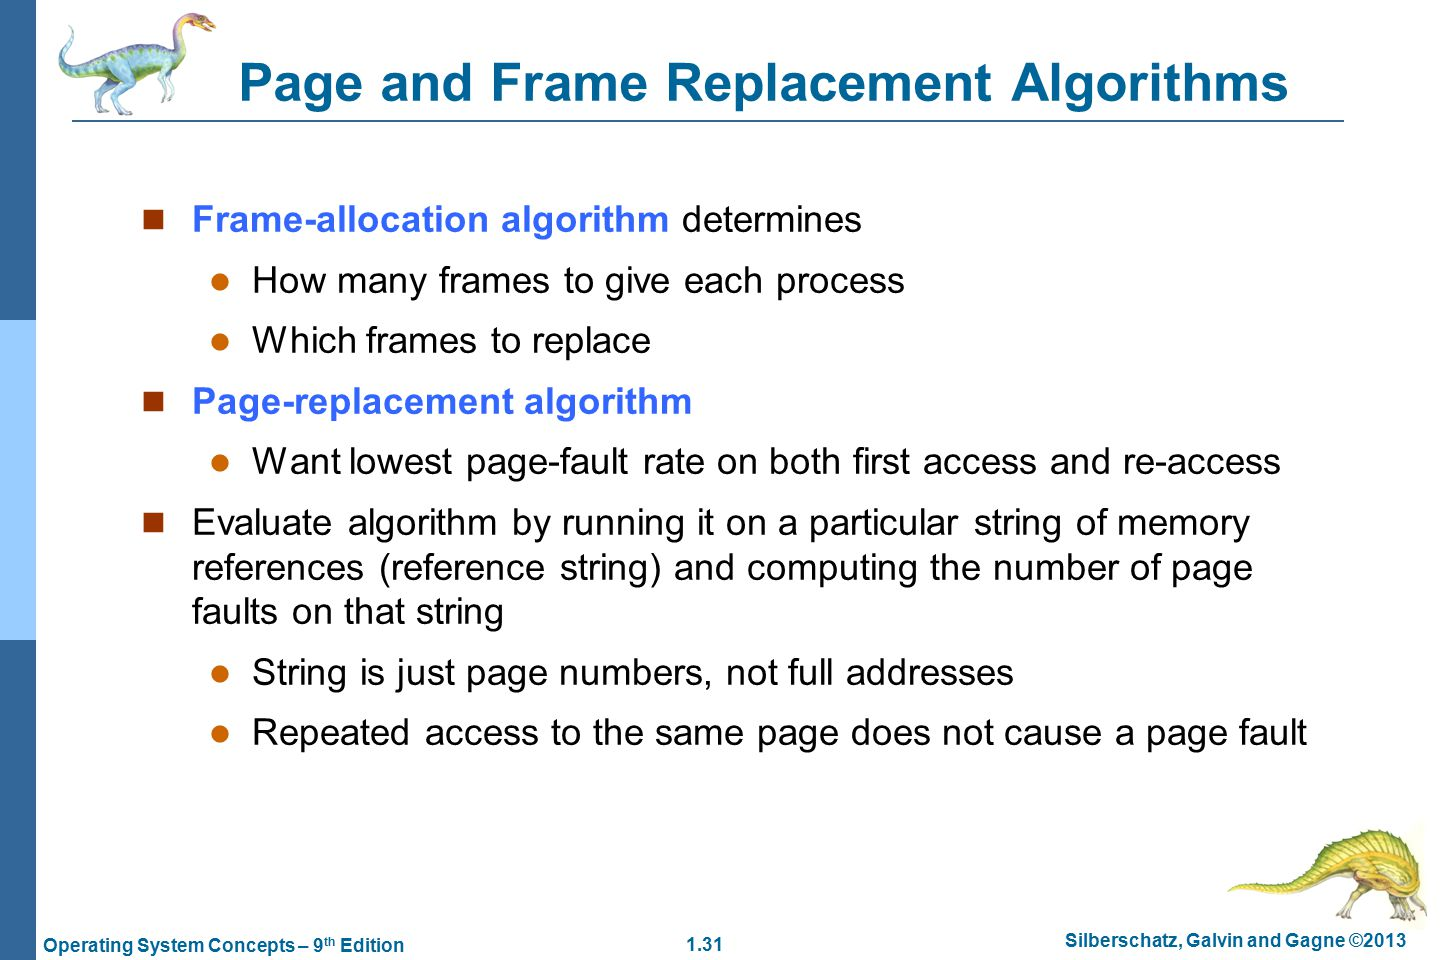 1.31 Silberschatz, Galvin and Gagne ©2013 Operating System Concepts – 9 th Edition Page and Frame Replacement Algorithms Frame-allocation algorithm determines How many frames to give each process Which frames to replace Page-replacement algorithm Want lowest page-fault rate on both first access and re-access Evaluate algorithm by running it on a particular string of memory references (reference string) and computing the number of page faults on that string String is just page numbers, not full addresses Repeated access to the same page does not cause a page fault